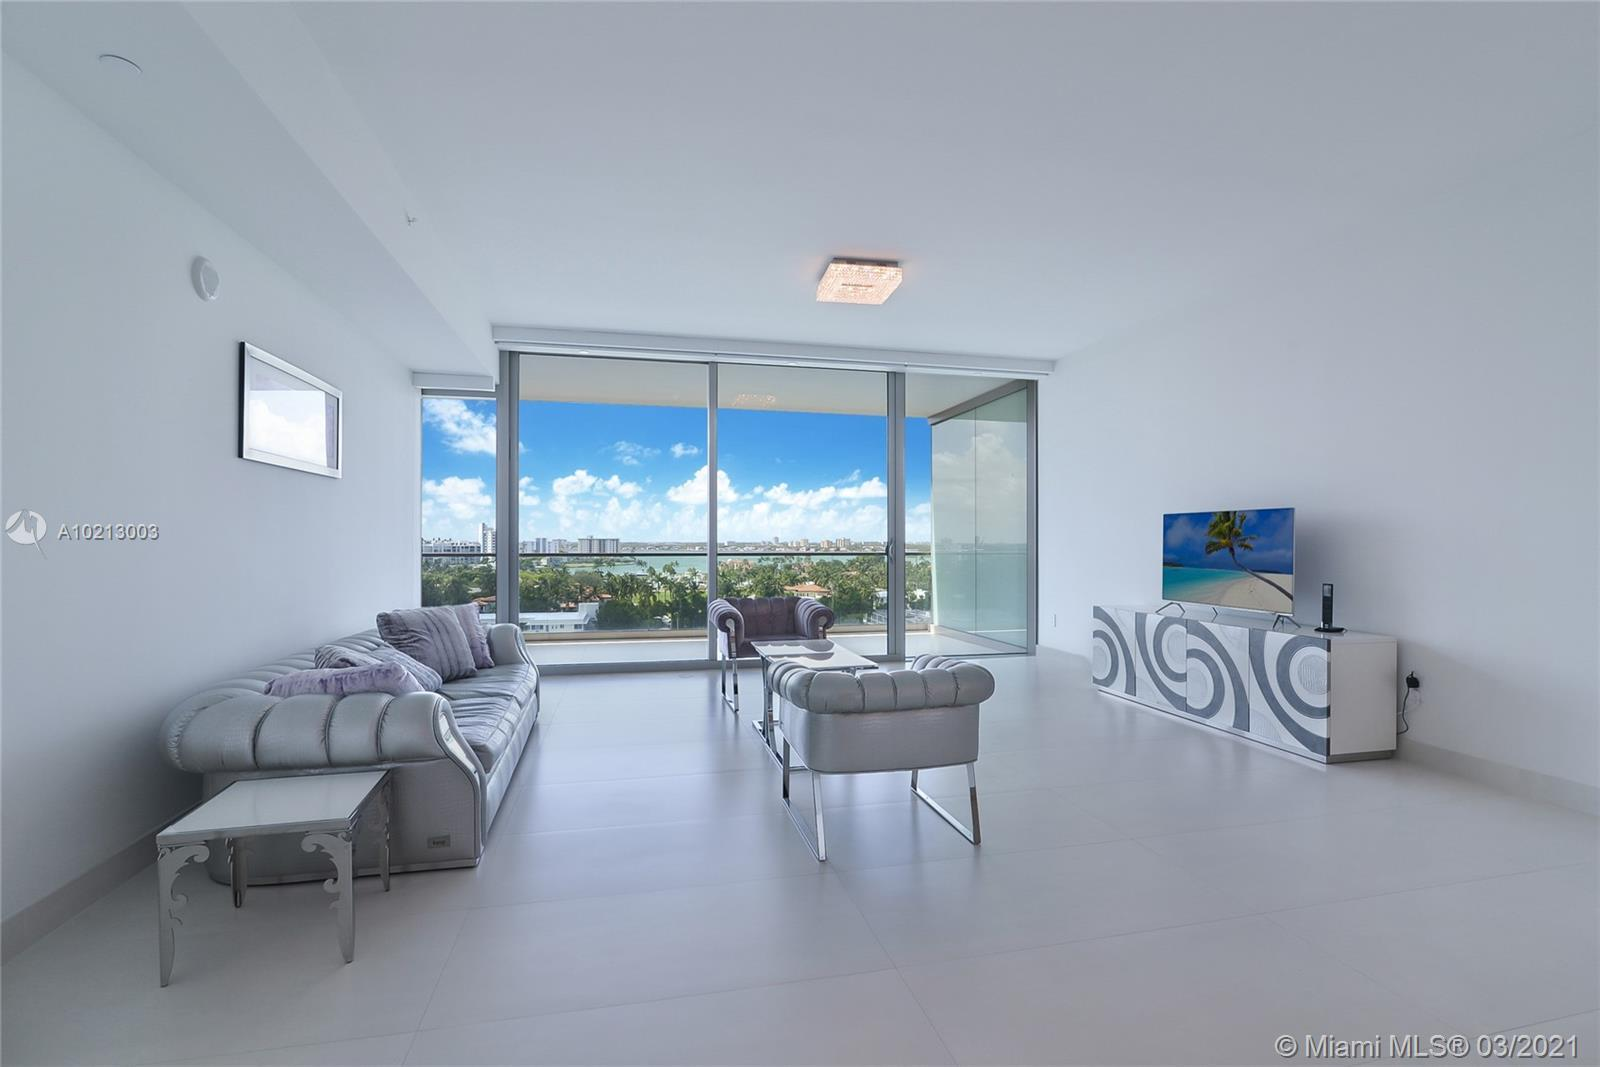 PANORAMIC BAY VIEWS / AMAZING SUNSETS / 1 BED/ 1.5 BATH/ ITALIAN Porcelain floors throughout/ remote